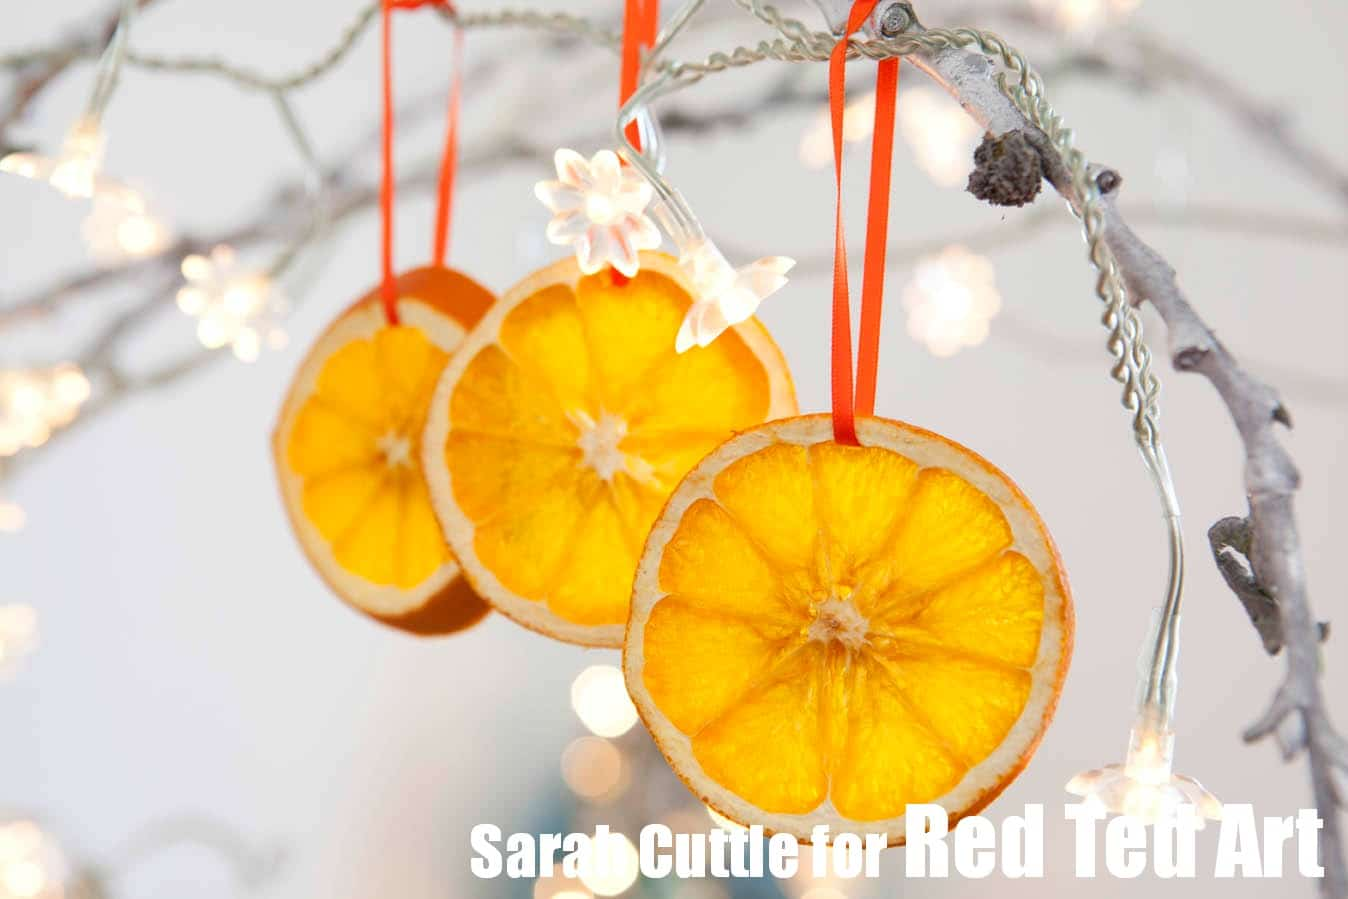 orange slices how to dry orange slices tutorial these make great ornaments or decorations - Orange Christmas Decorations